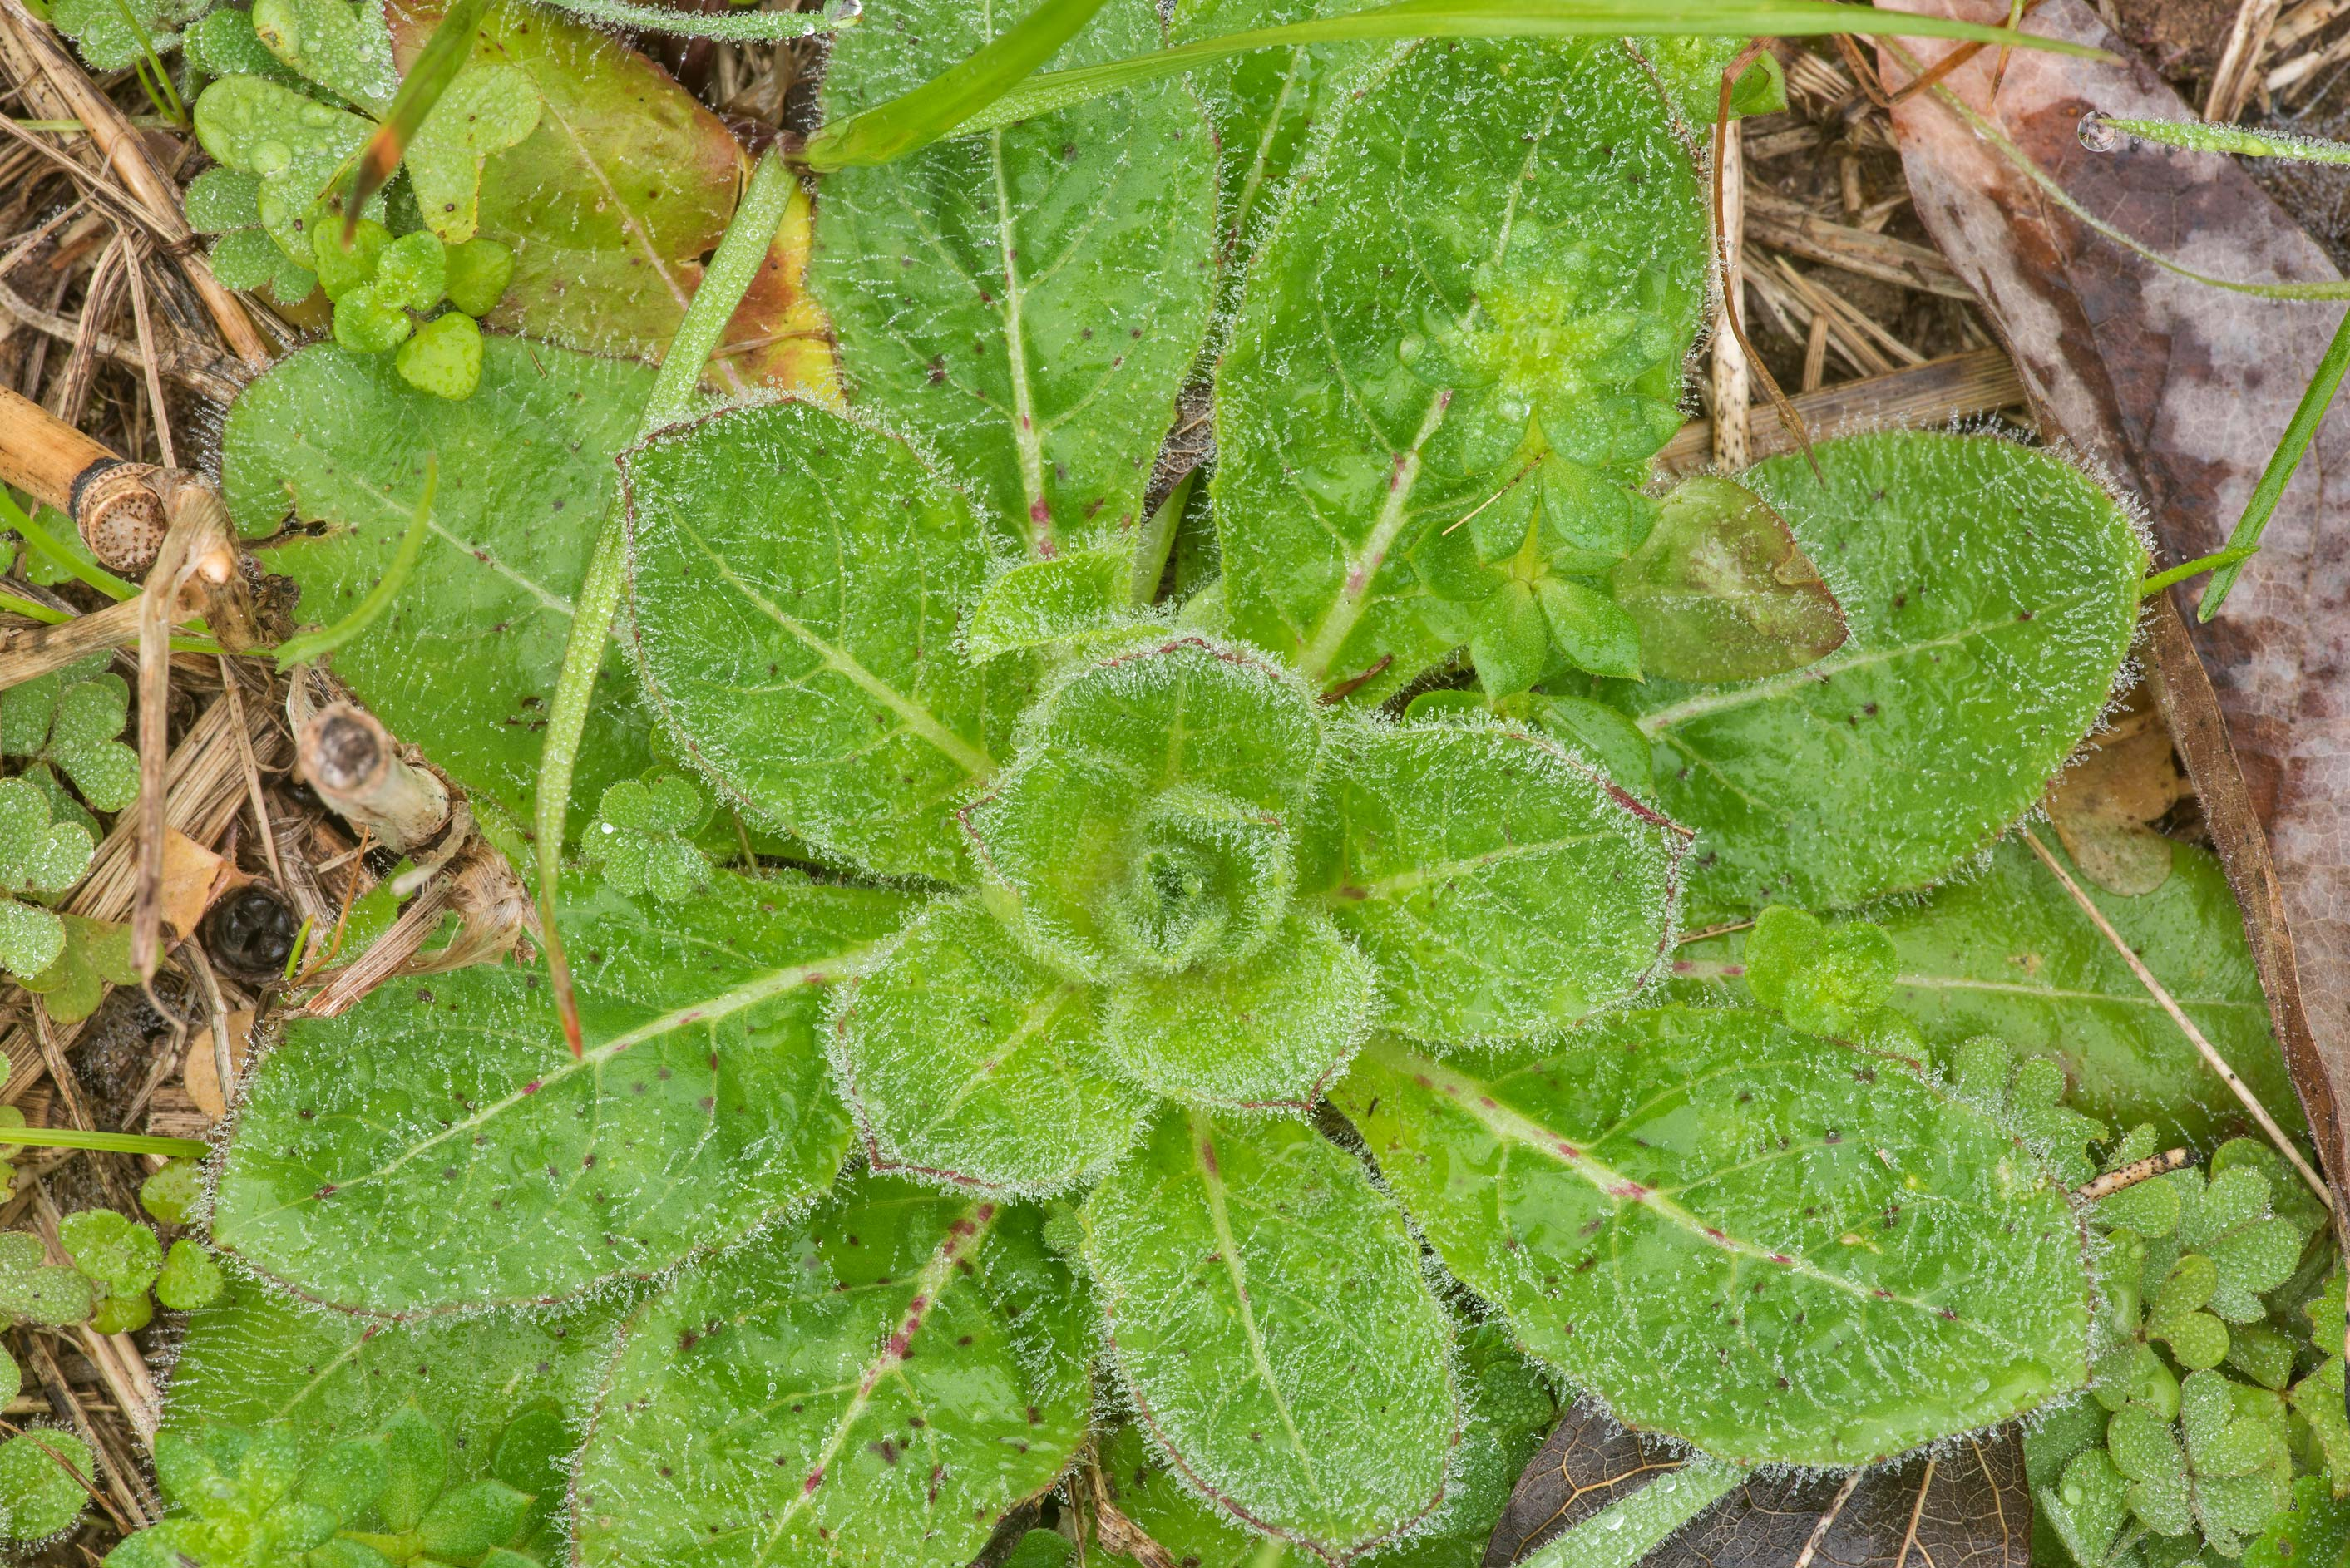 Green hairy winter rosette of leaves in...State Historic Site. Washington, Texas